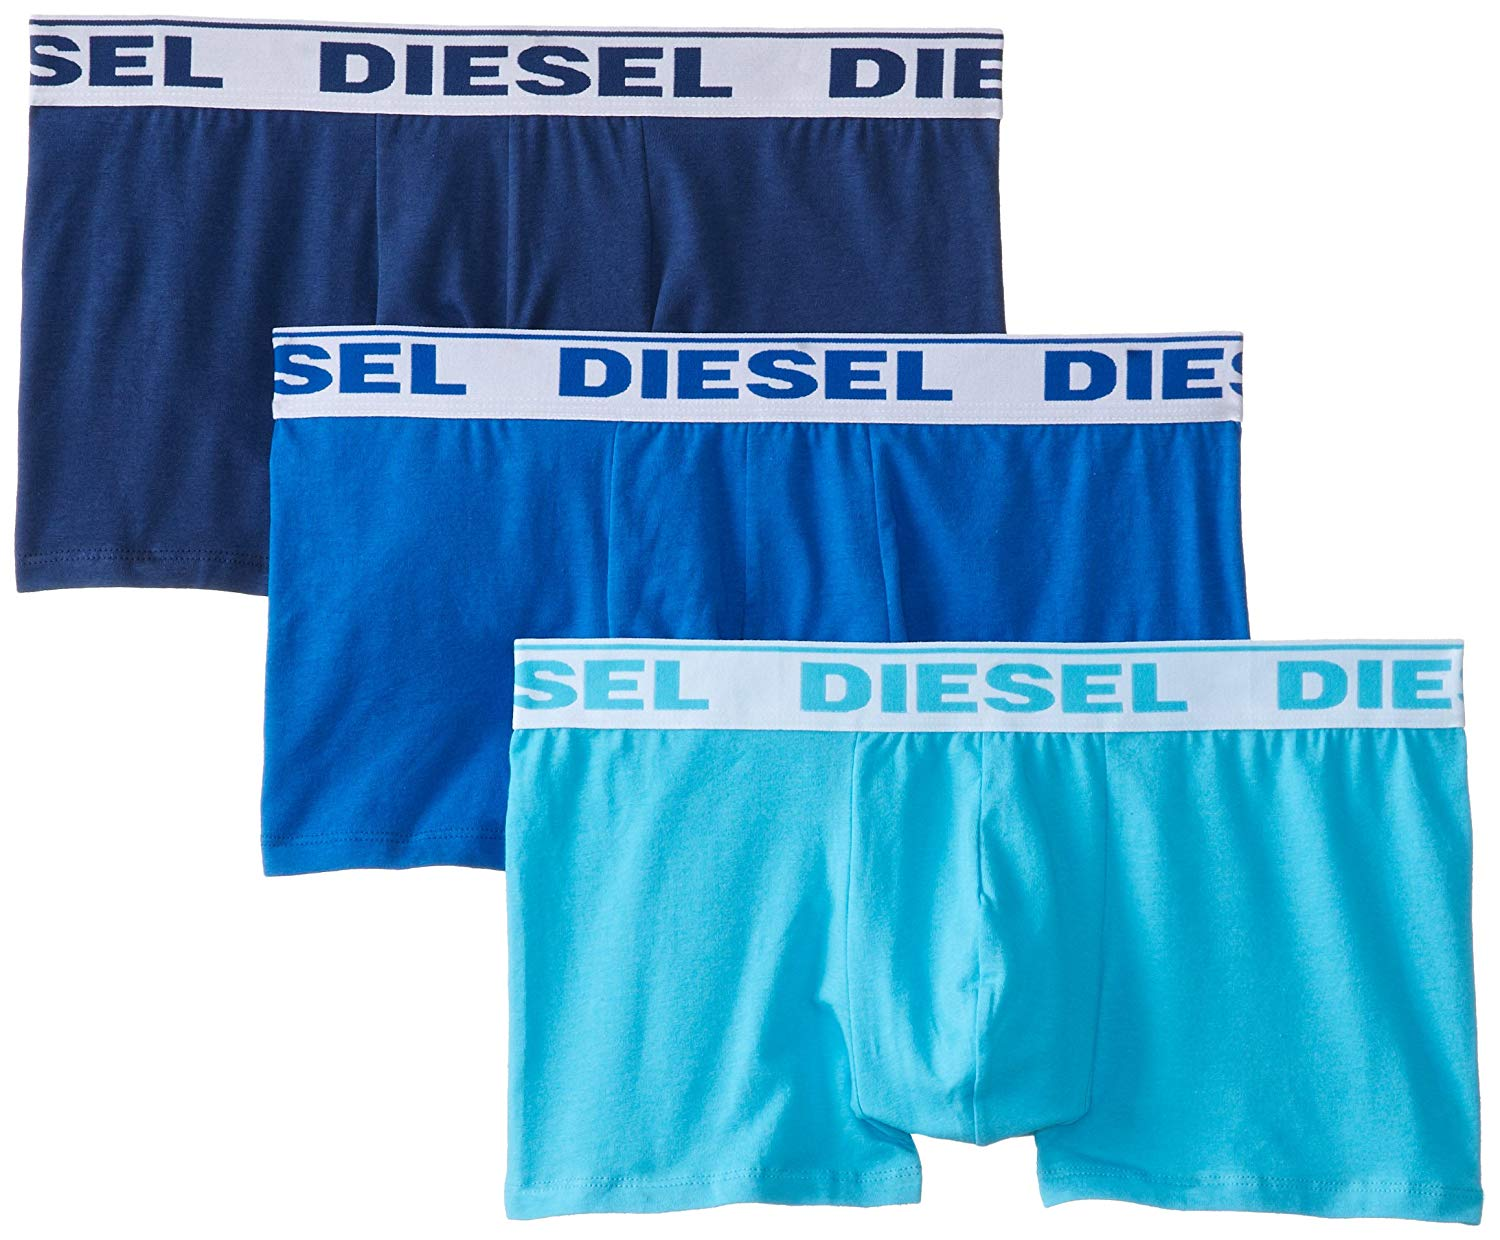 diesel-boxerky-umbx-shawn-fresh-and-bright-3-baleni-20